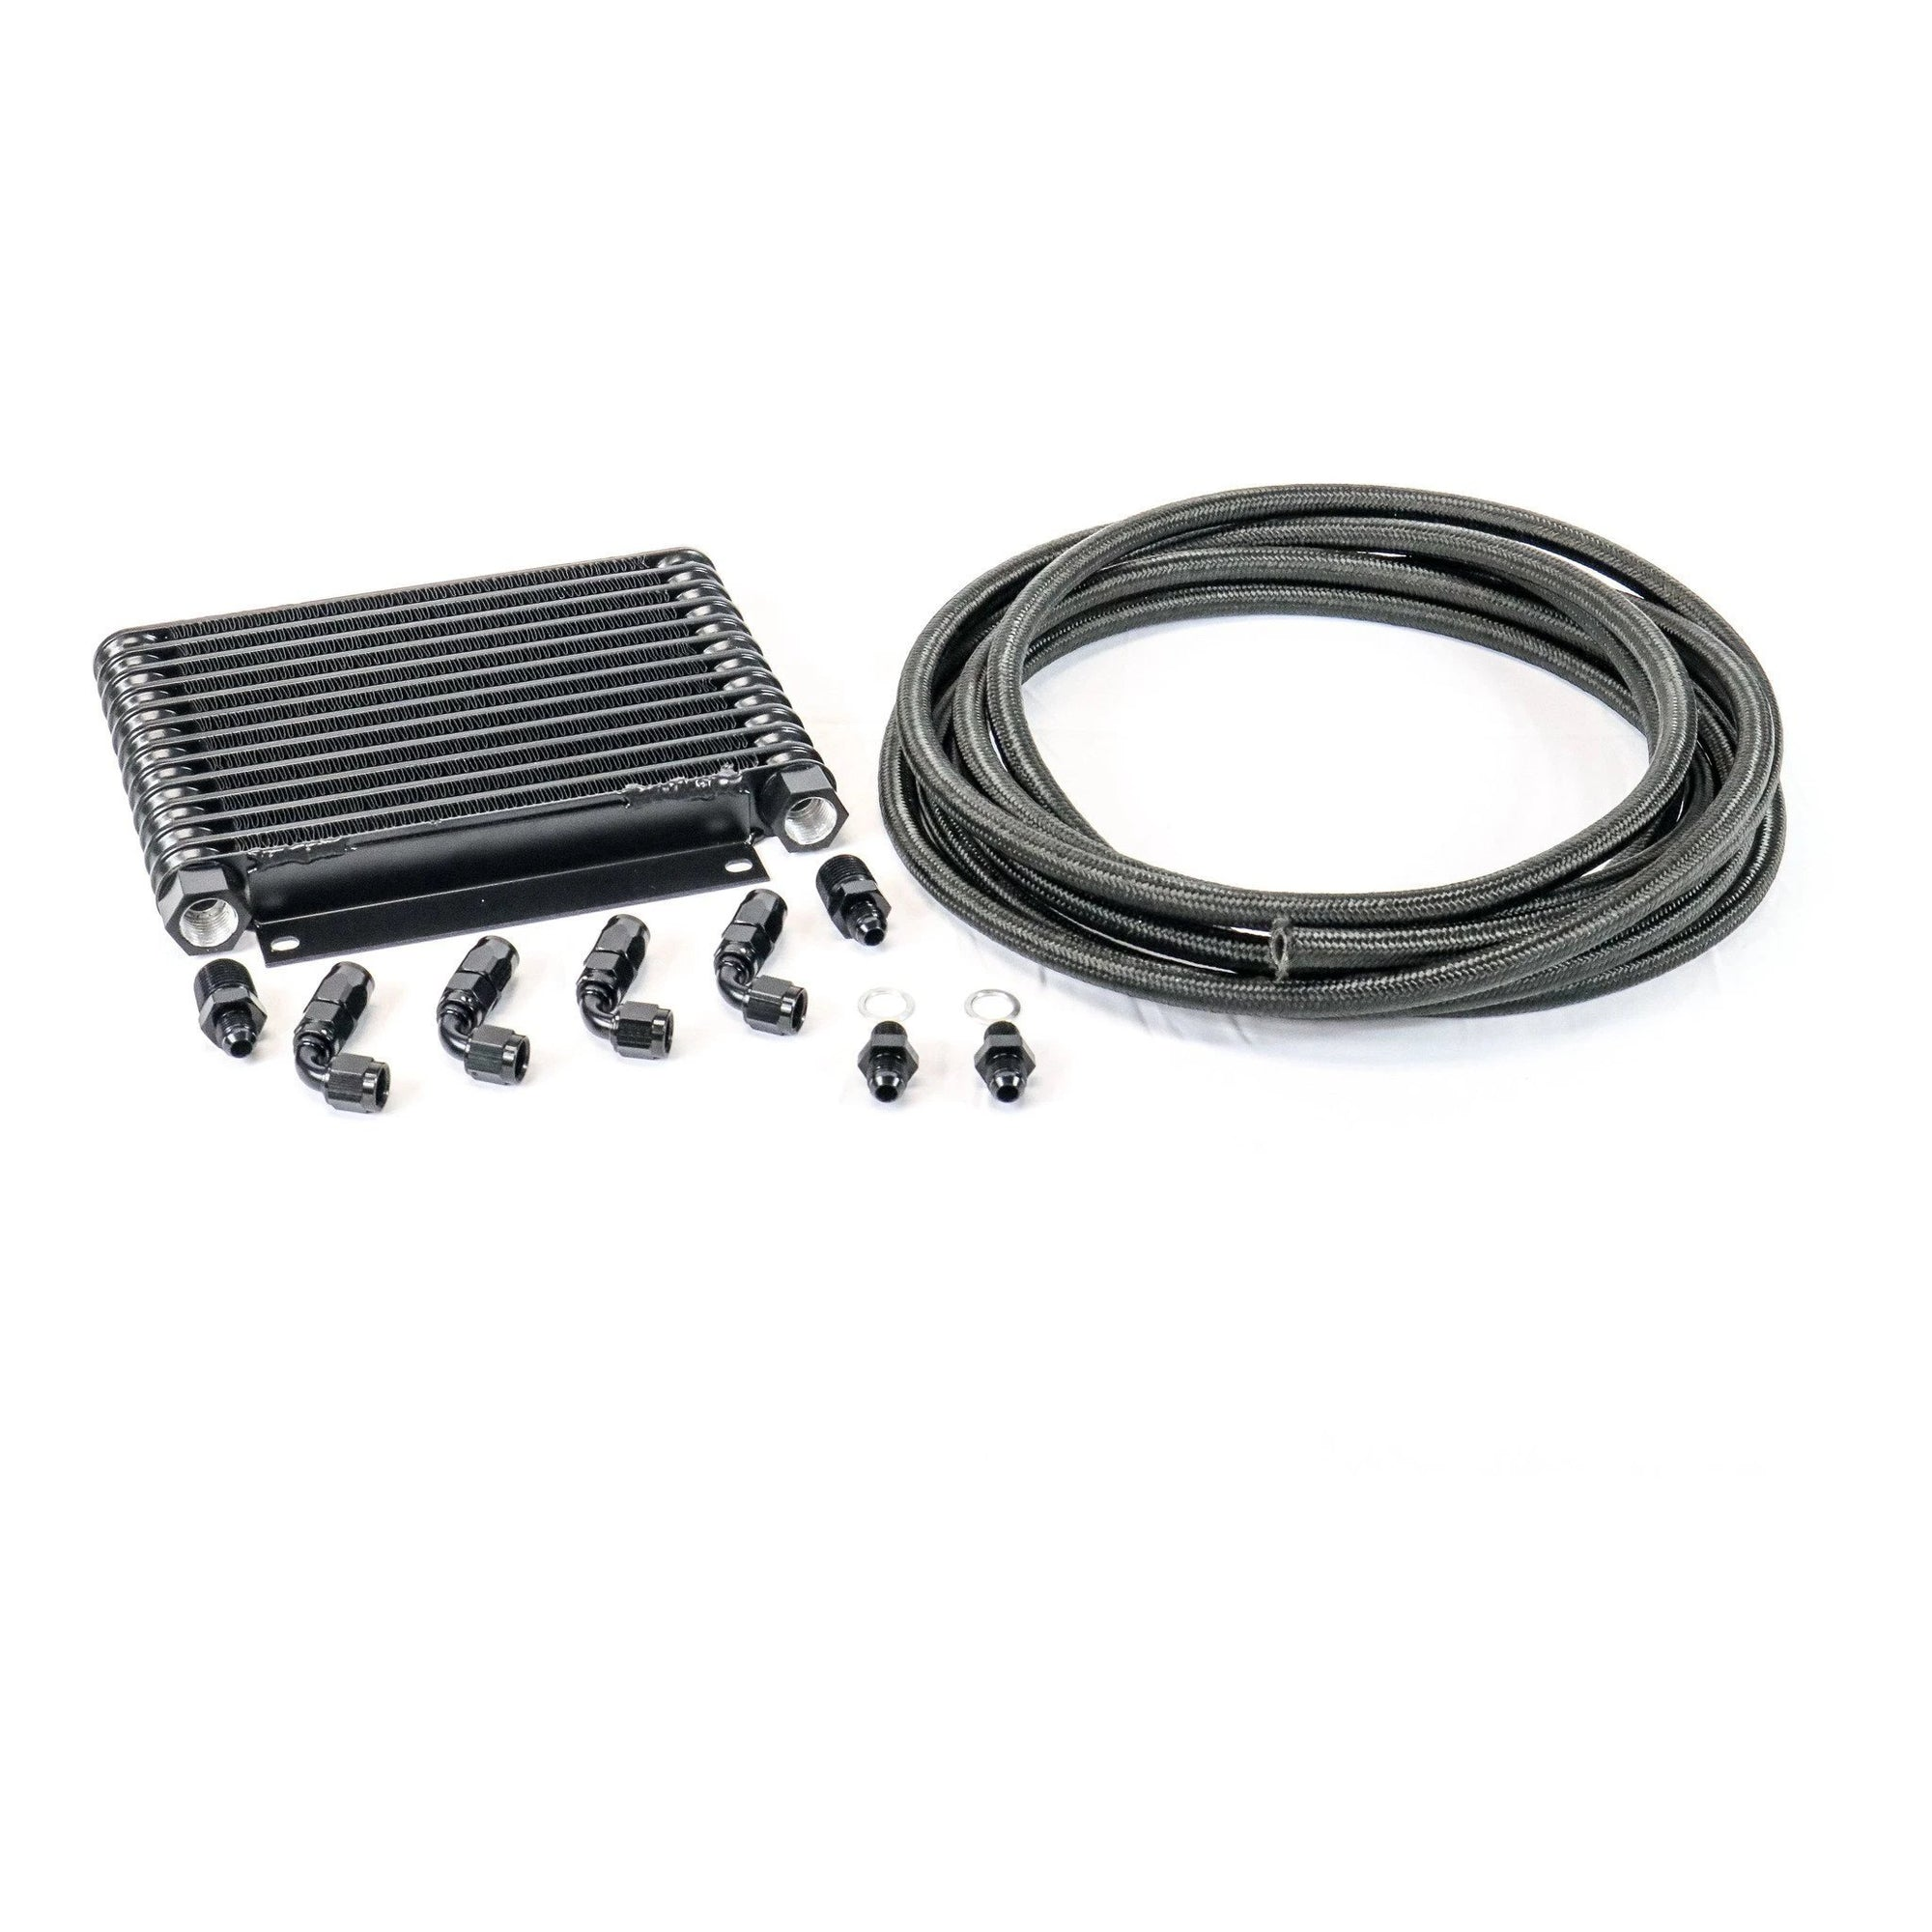 Aftermarket Powerglide Derale Trans Cooler Kit w/Fragola Lines/Fittings-Kit-Motion Raceworks